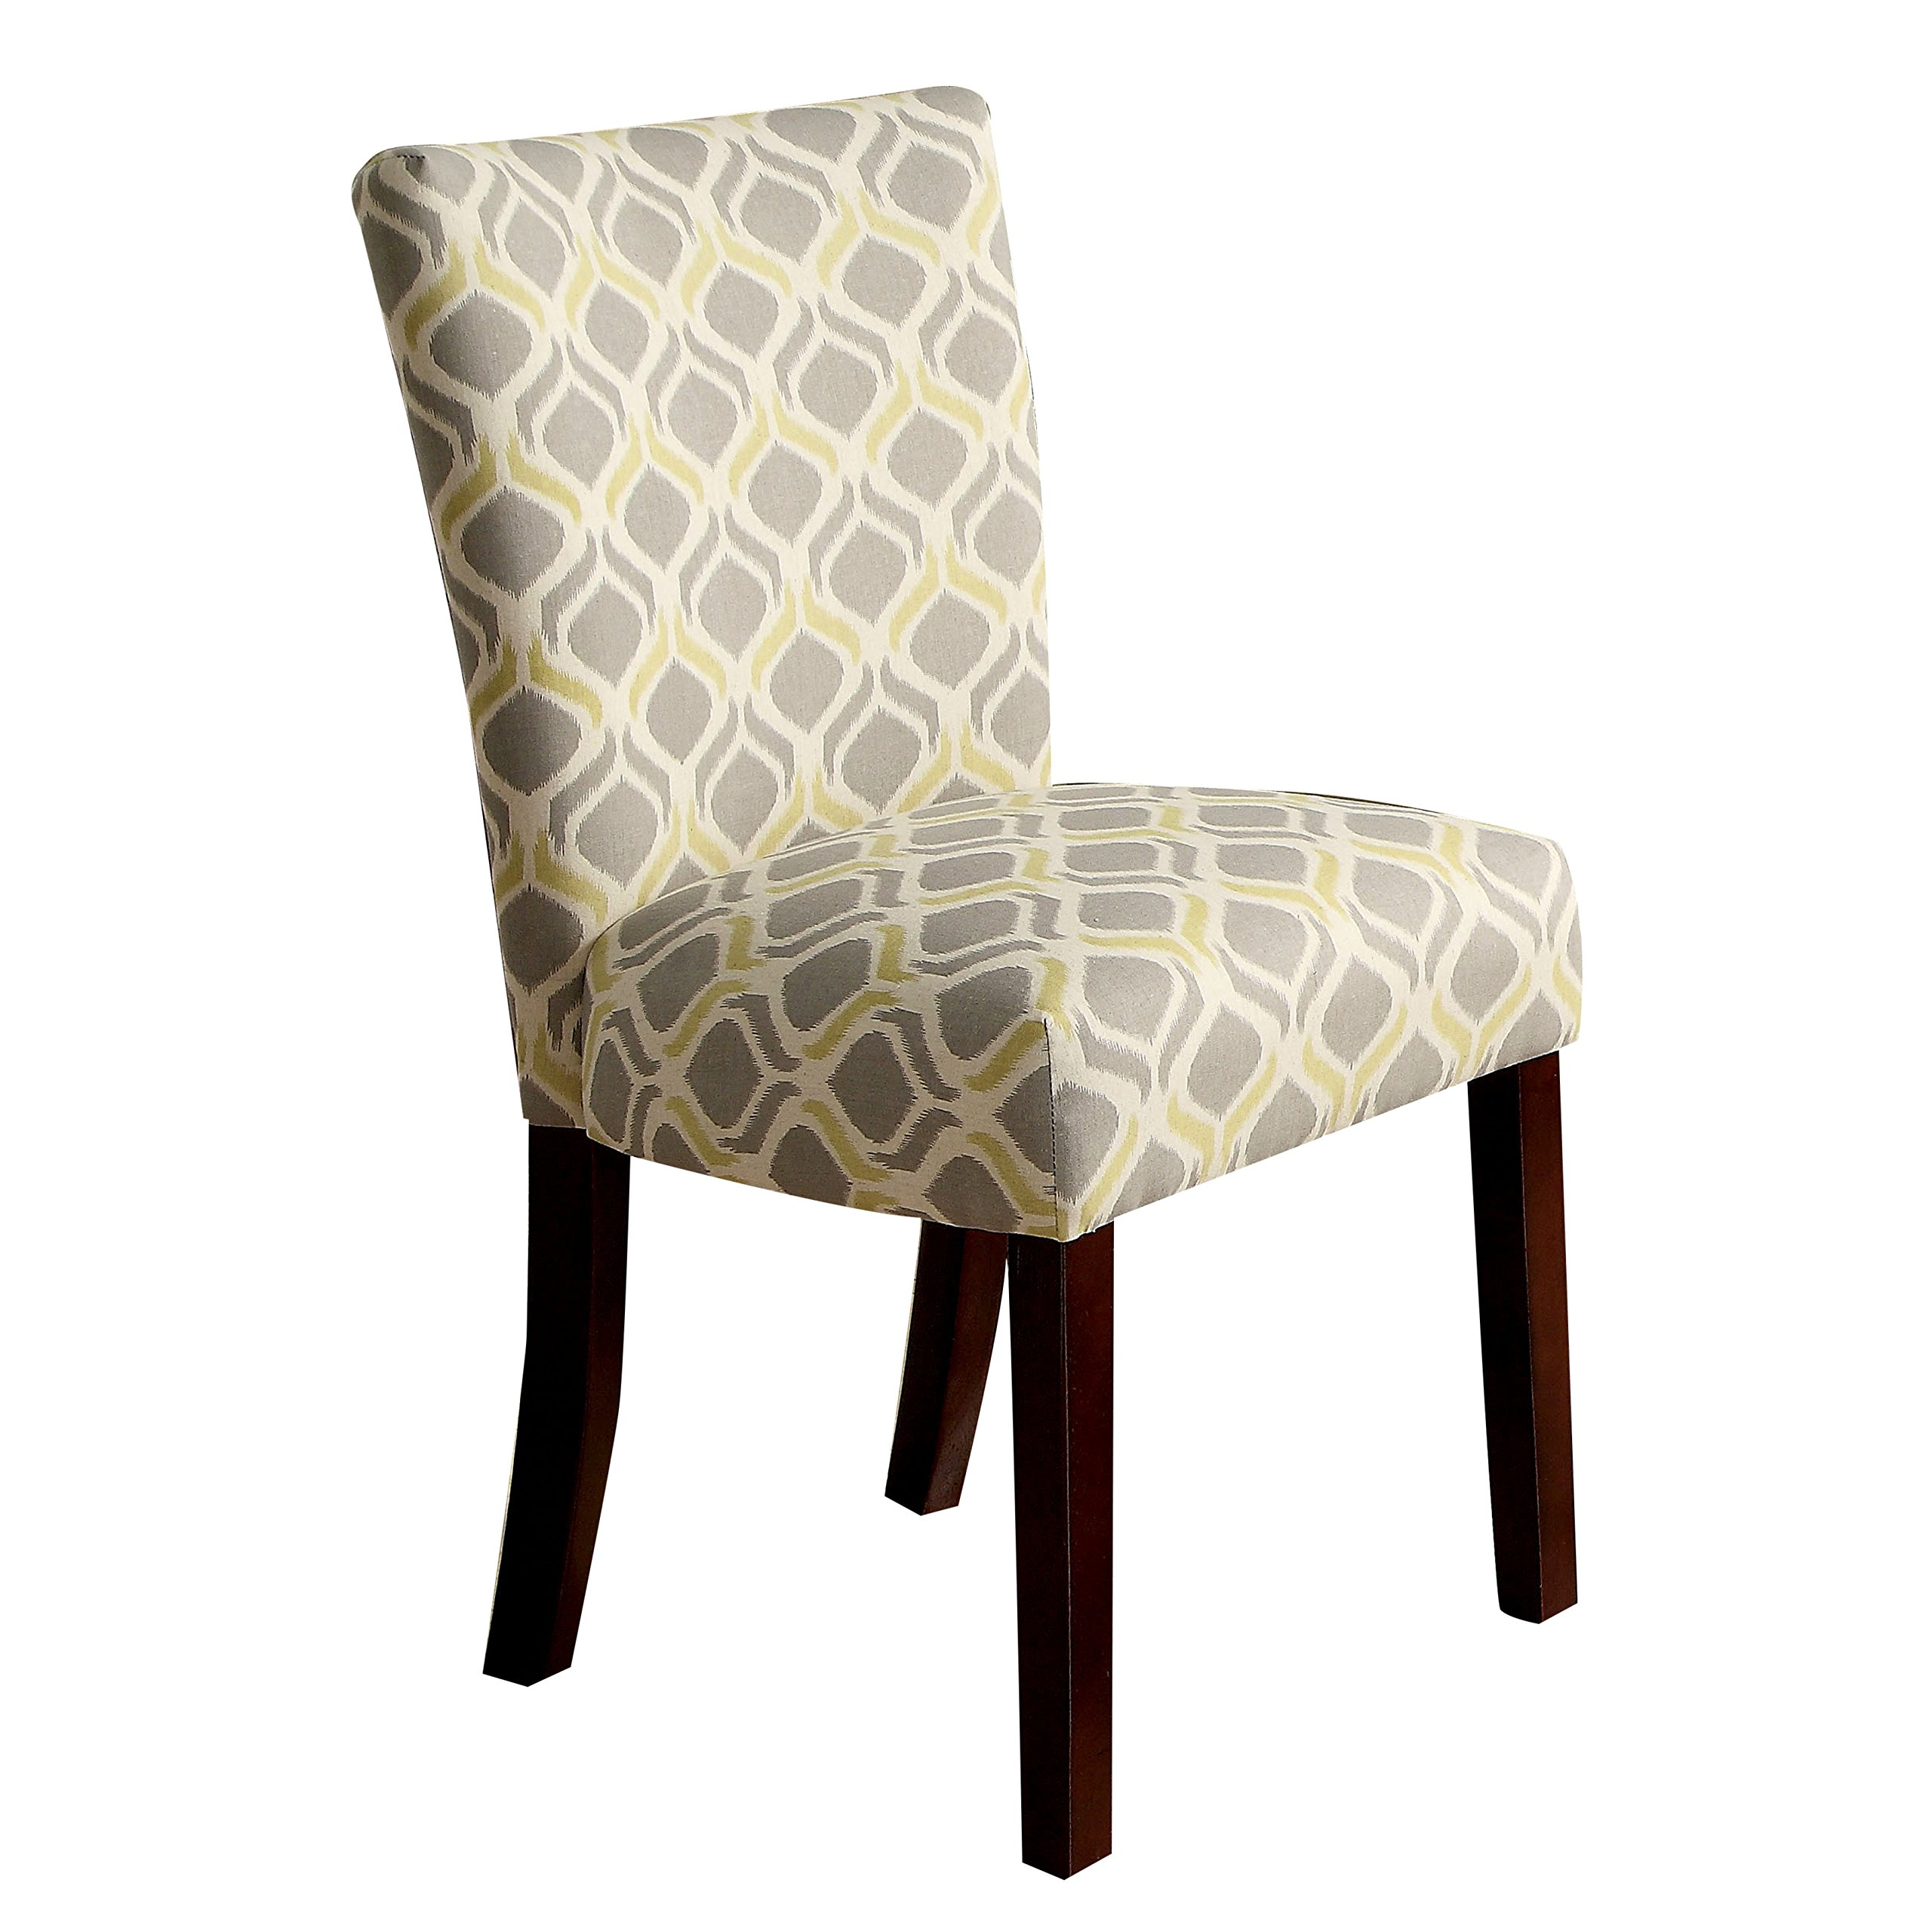 247SHOPATHOME IDF-3507Y-SC Dining-Chairs, Yellow by 247SHOPATHOME